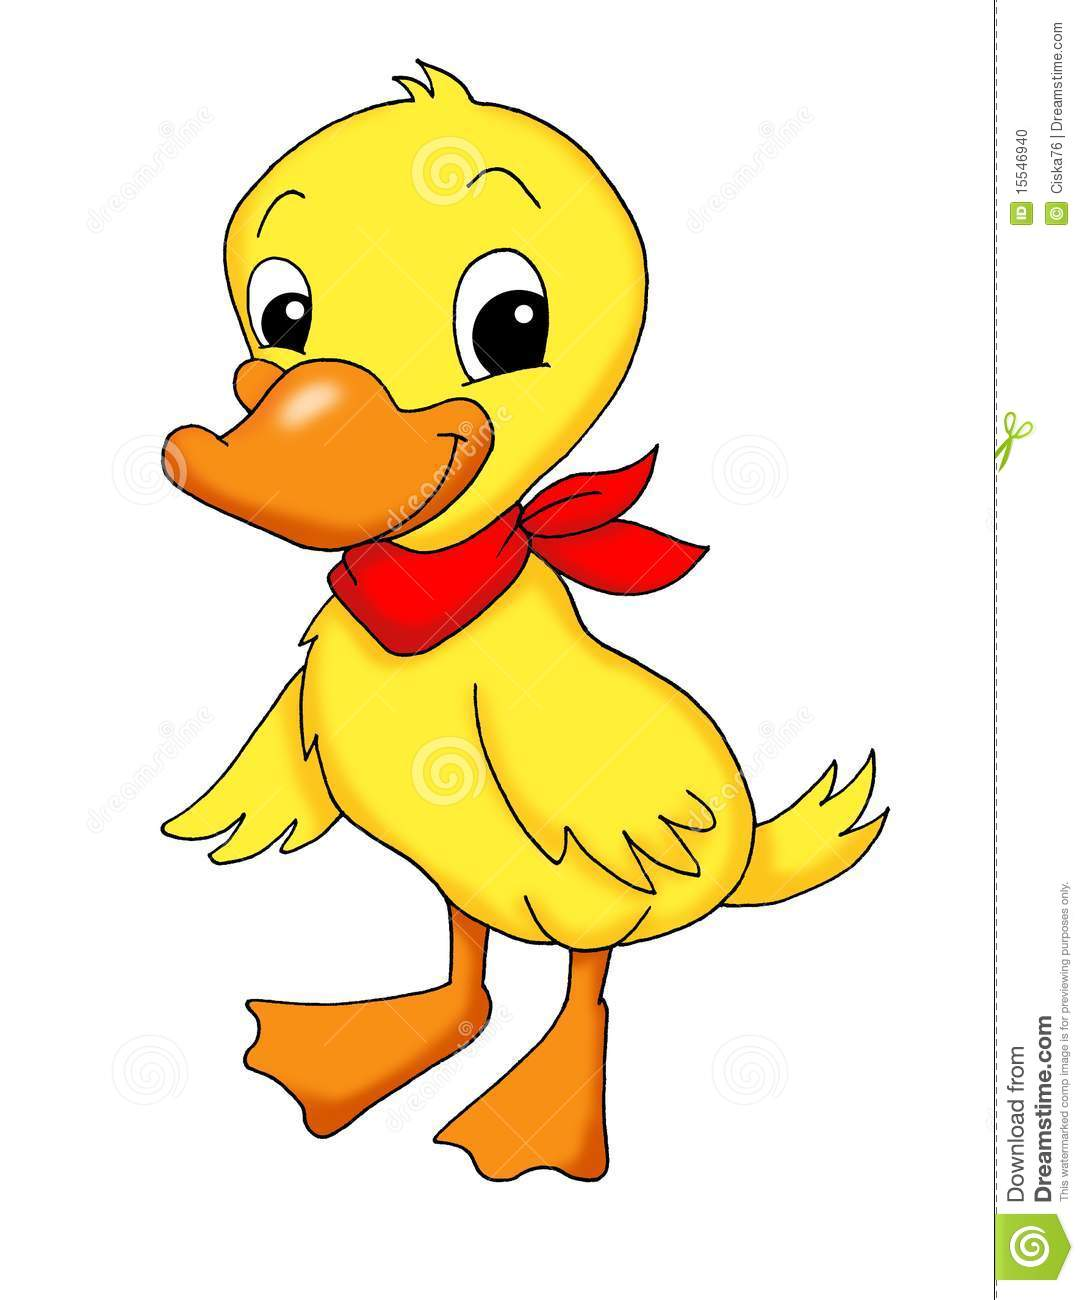 Cute Duckling Stock Photo - Image: 15546940